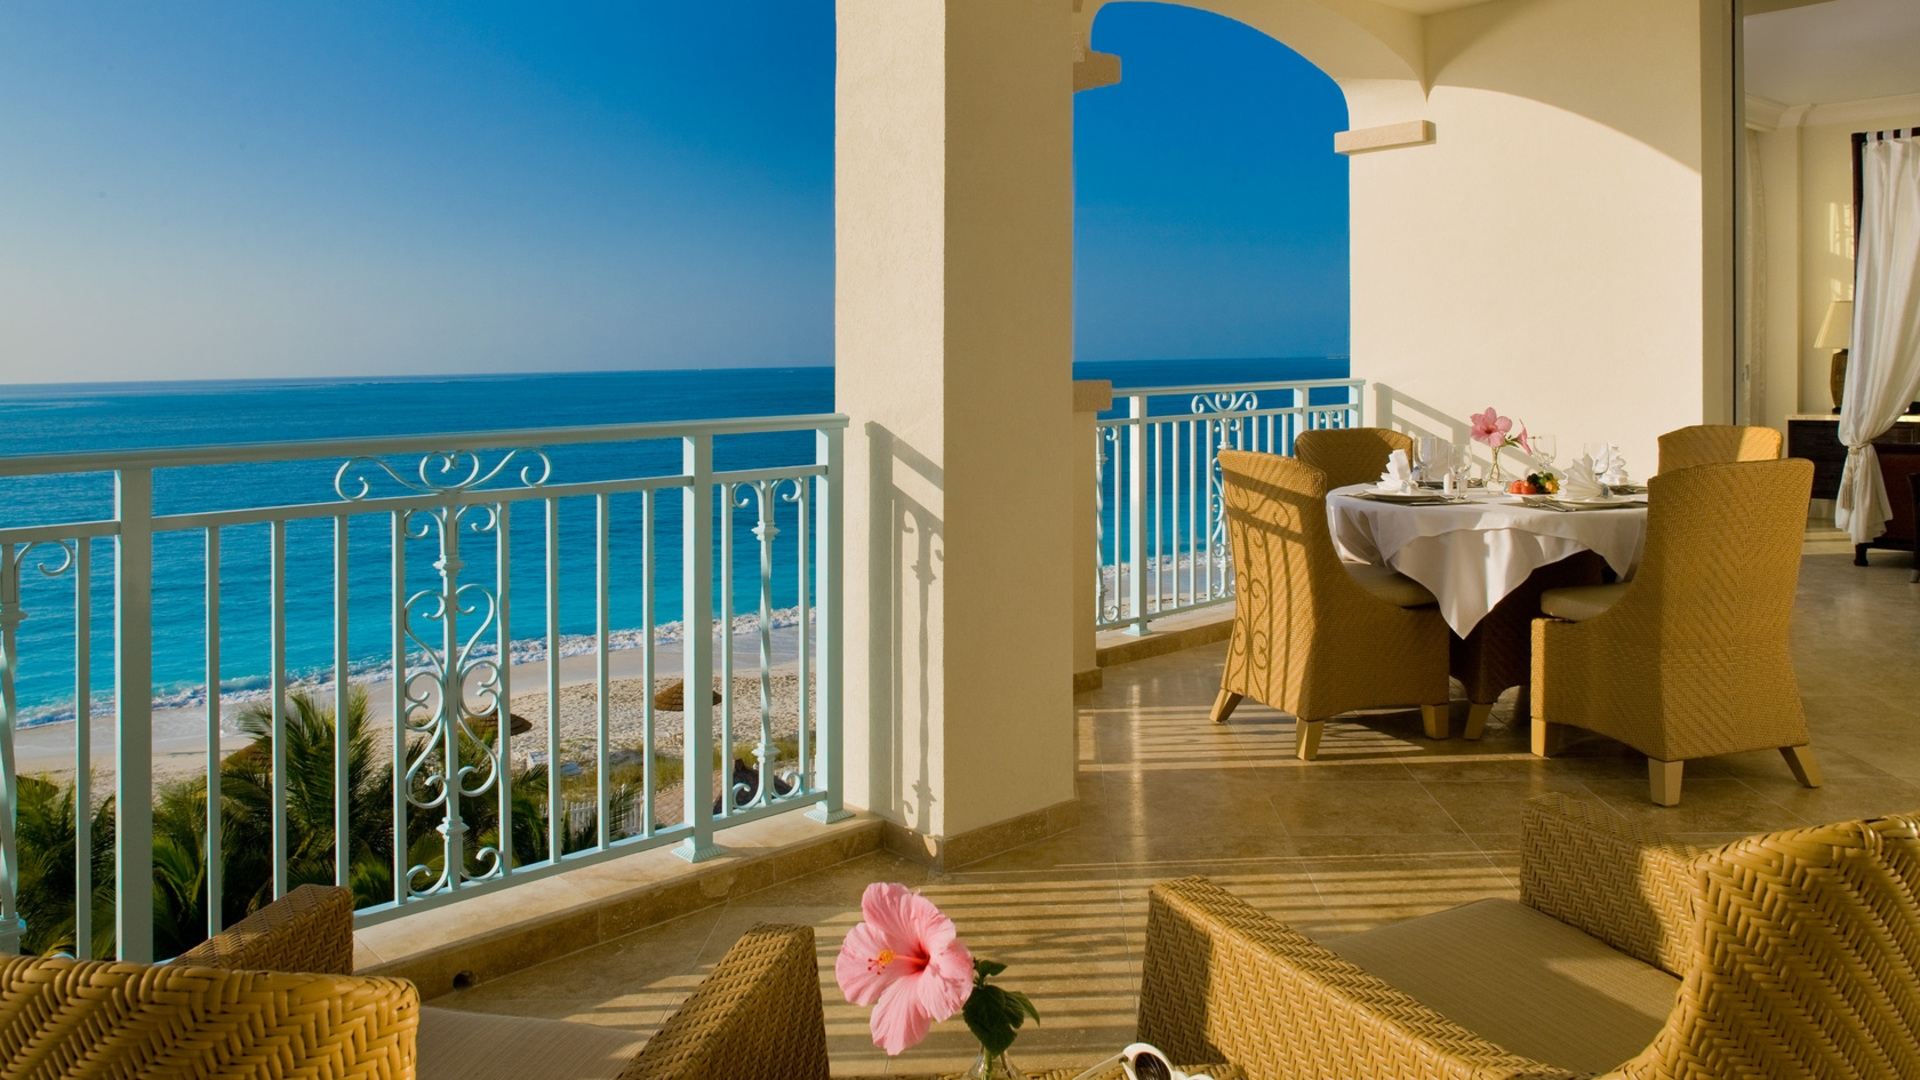 Sea beach terrace balcony view horizon hd wallpaper for Balcony with view